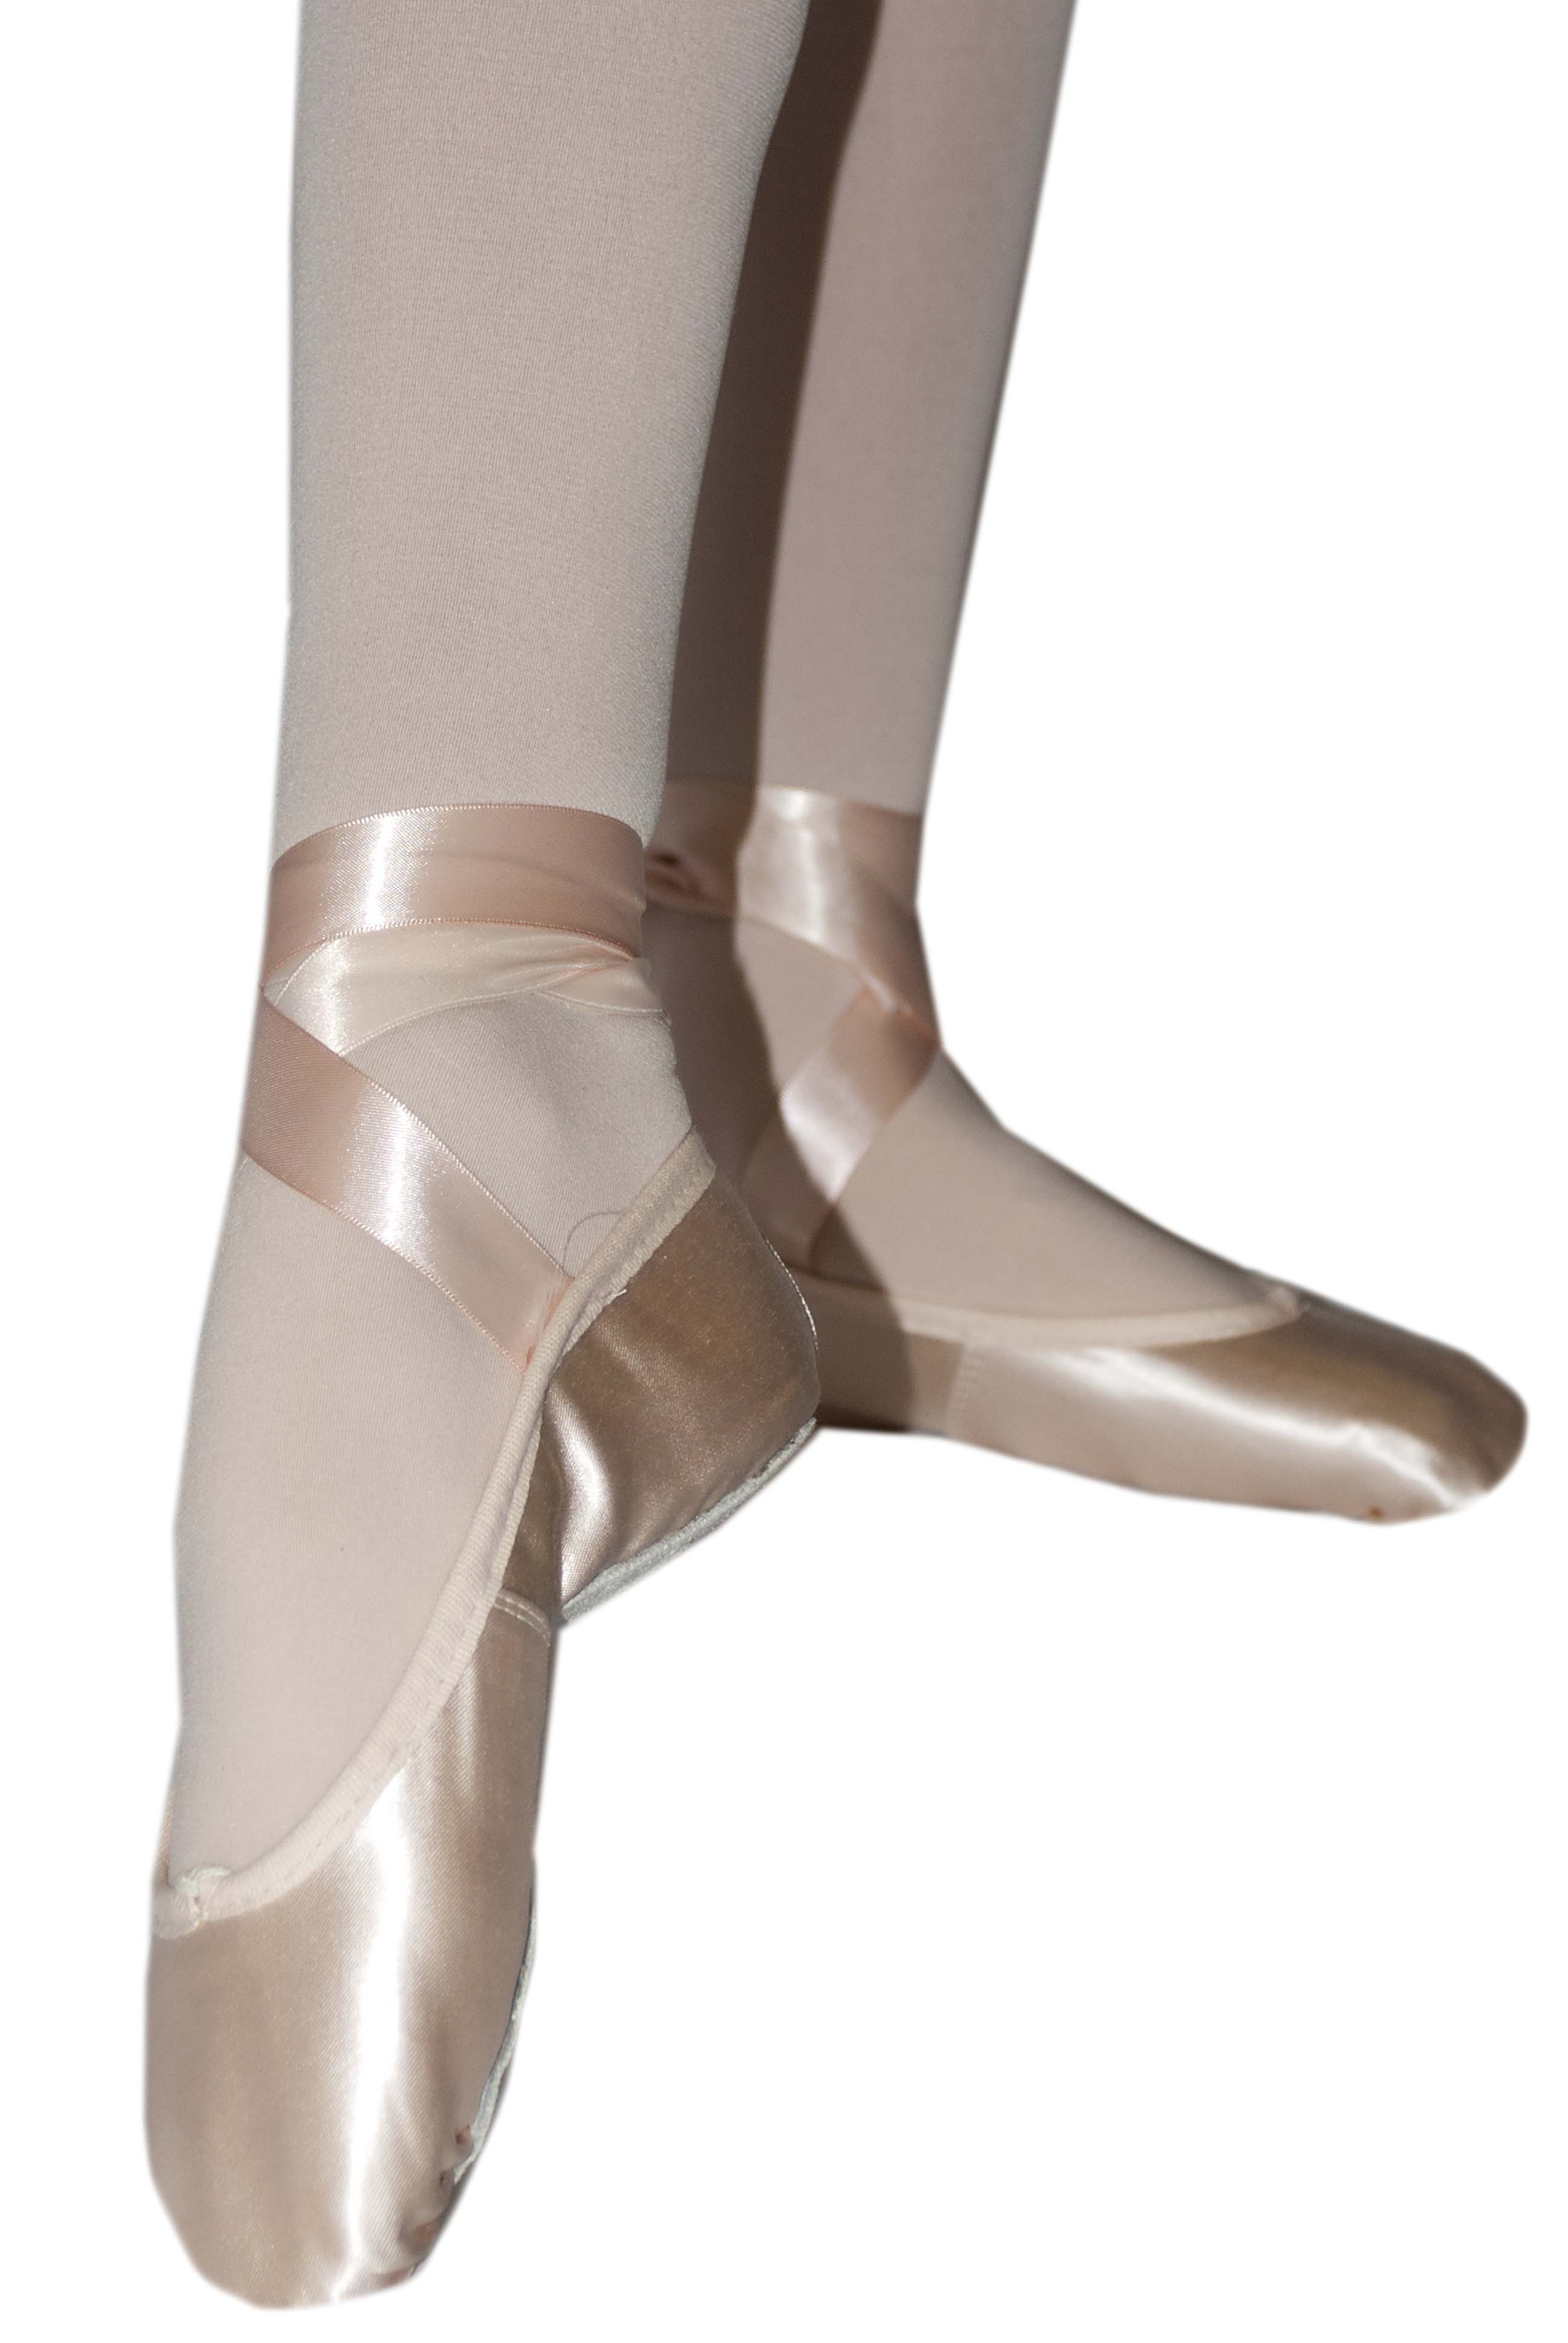 We have placed you on the MRP Apparel South Africa site based on your request. Ballet Pump. SKU: 01_ R Availability: Please make a selection! Ballet Pointed Pump. R MRP Shoes. Ballet Pump. R You may also like. MRP Shoes. Peeptoe Pump. R